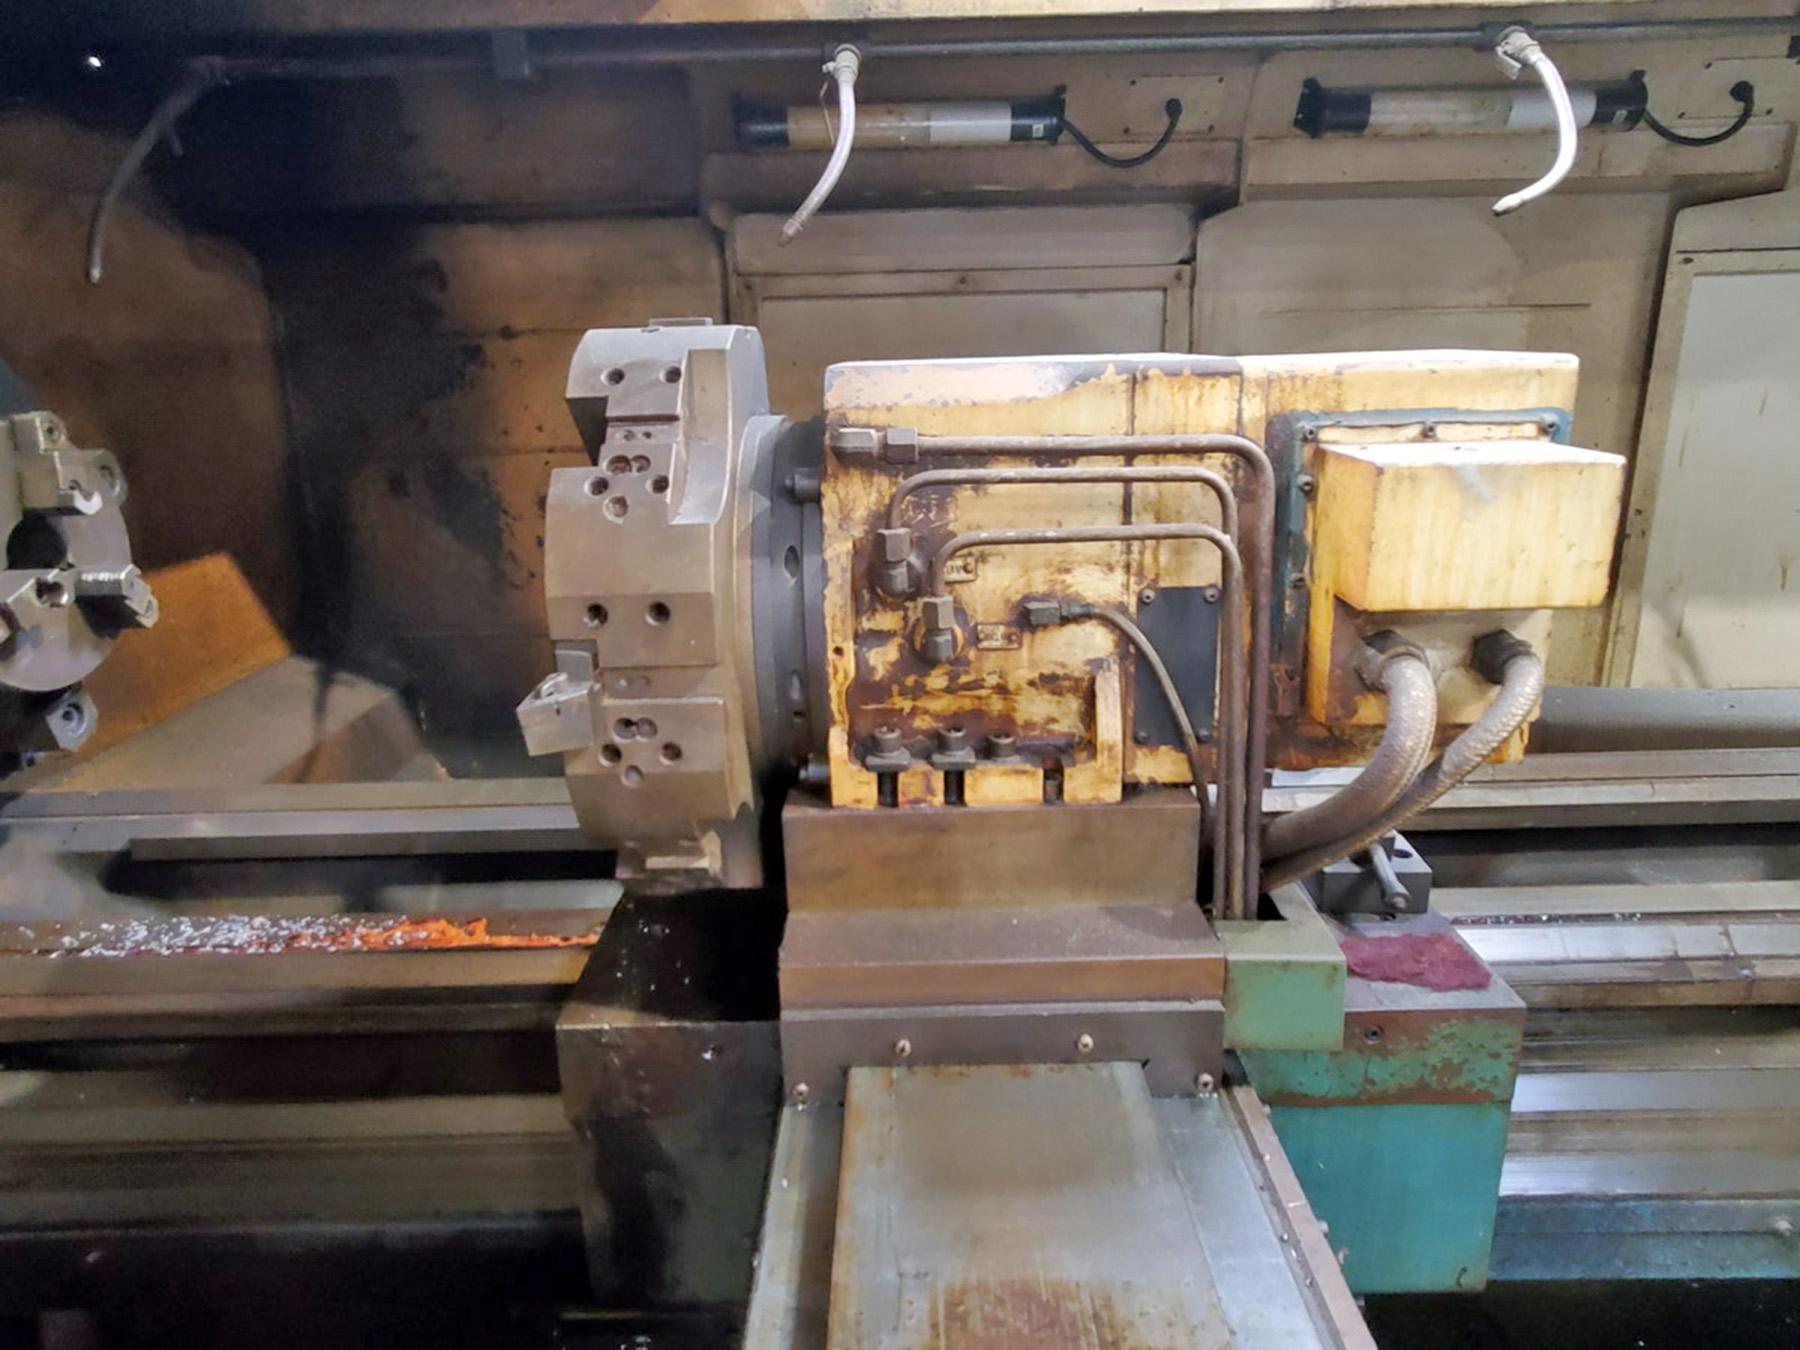 USED, KINGSTON CL-38 X 3000 DUAL TURRET HOLLOW SPINDLE CNC FLAT BED LATHE